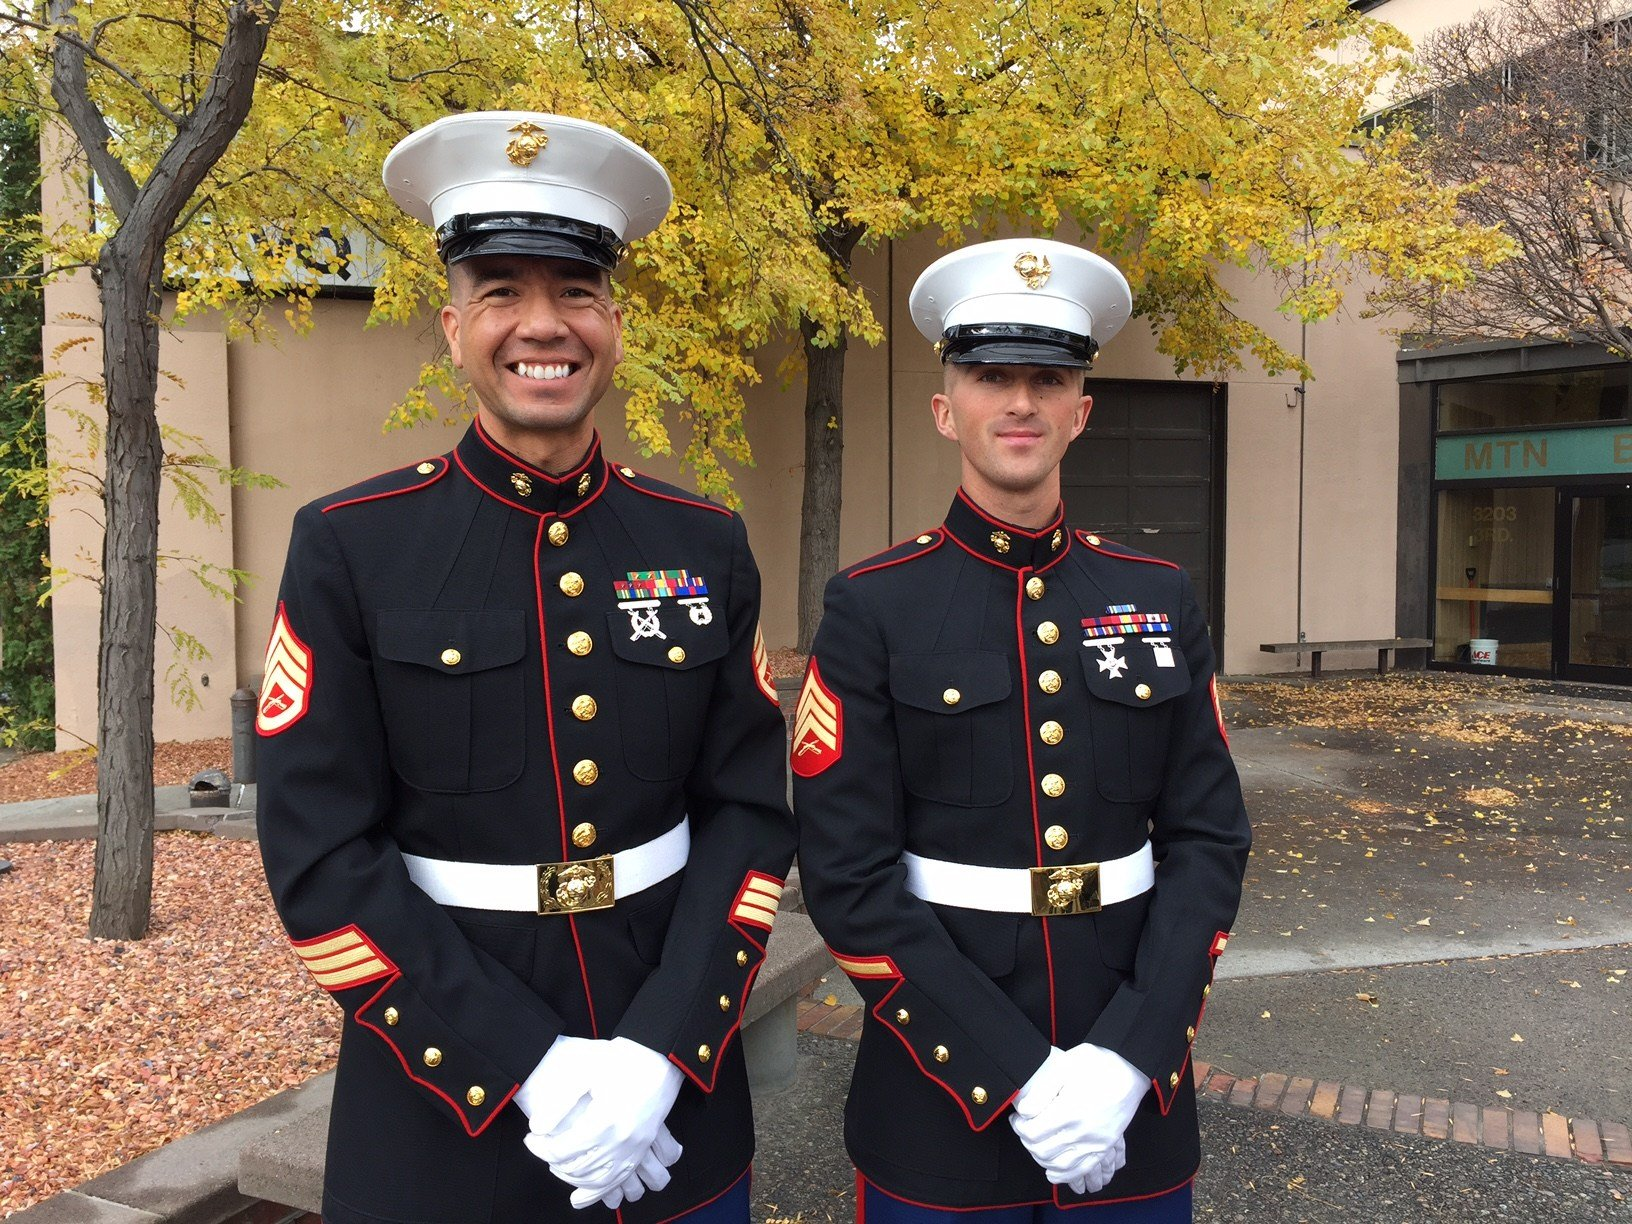 Staff Sgt. Peter Funnell and Sgt. Bryce Ray ready to help Toys for Tots